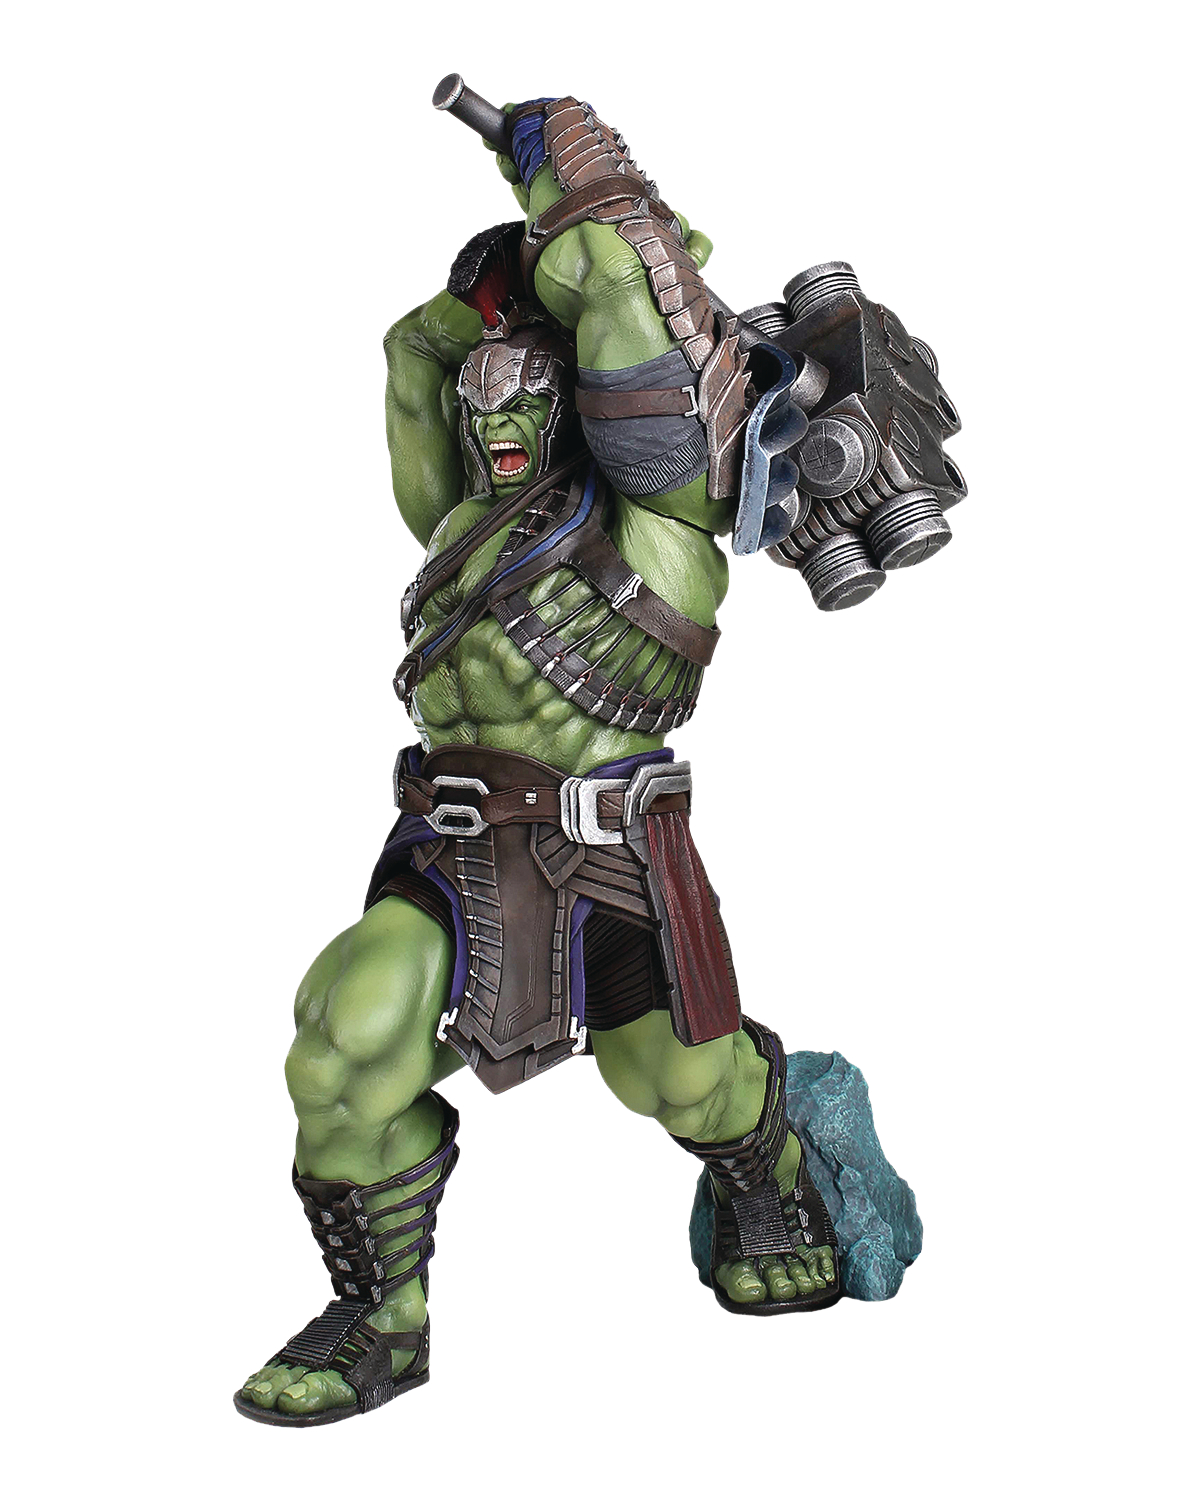 MARVEL HULK RAGNAROK COLLECTORS GALLERY STATUE